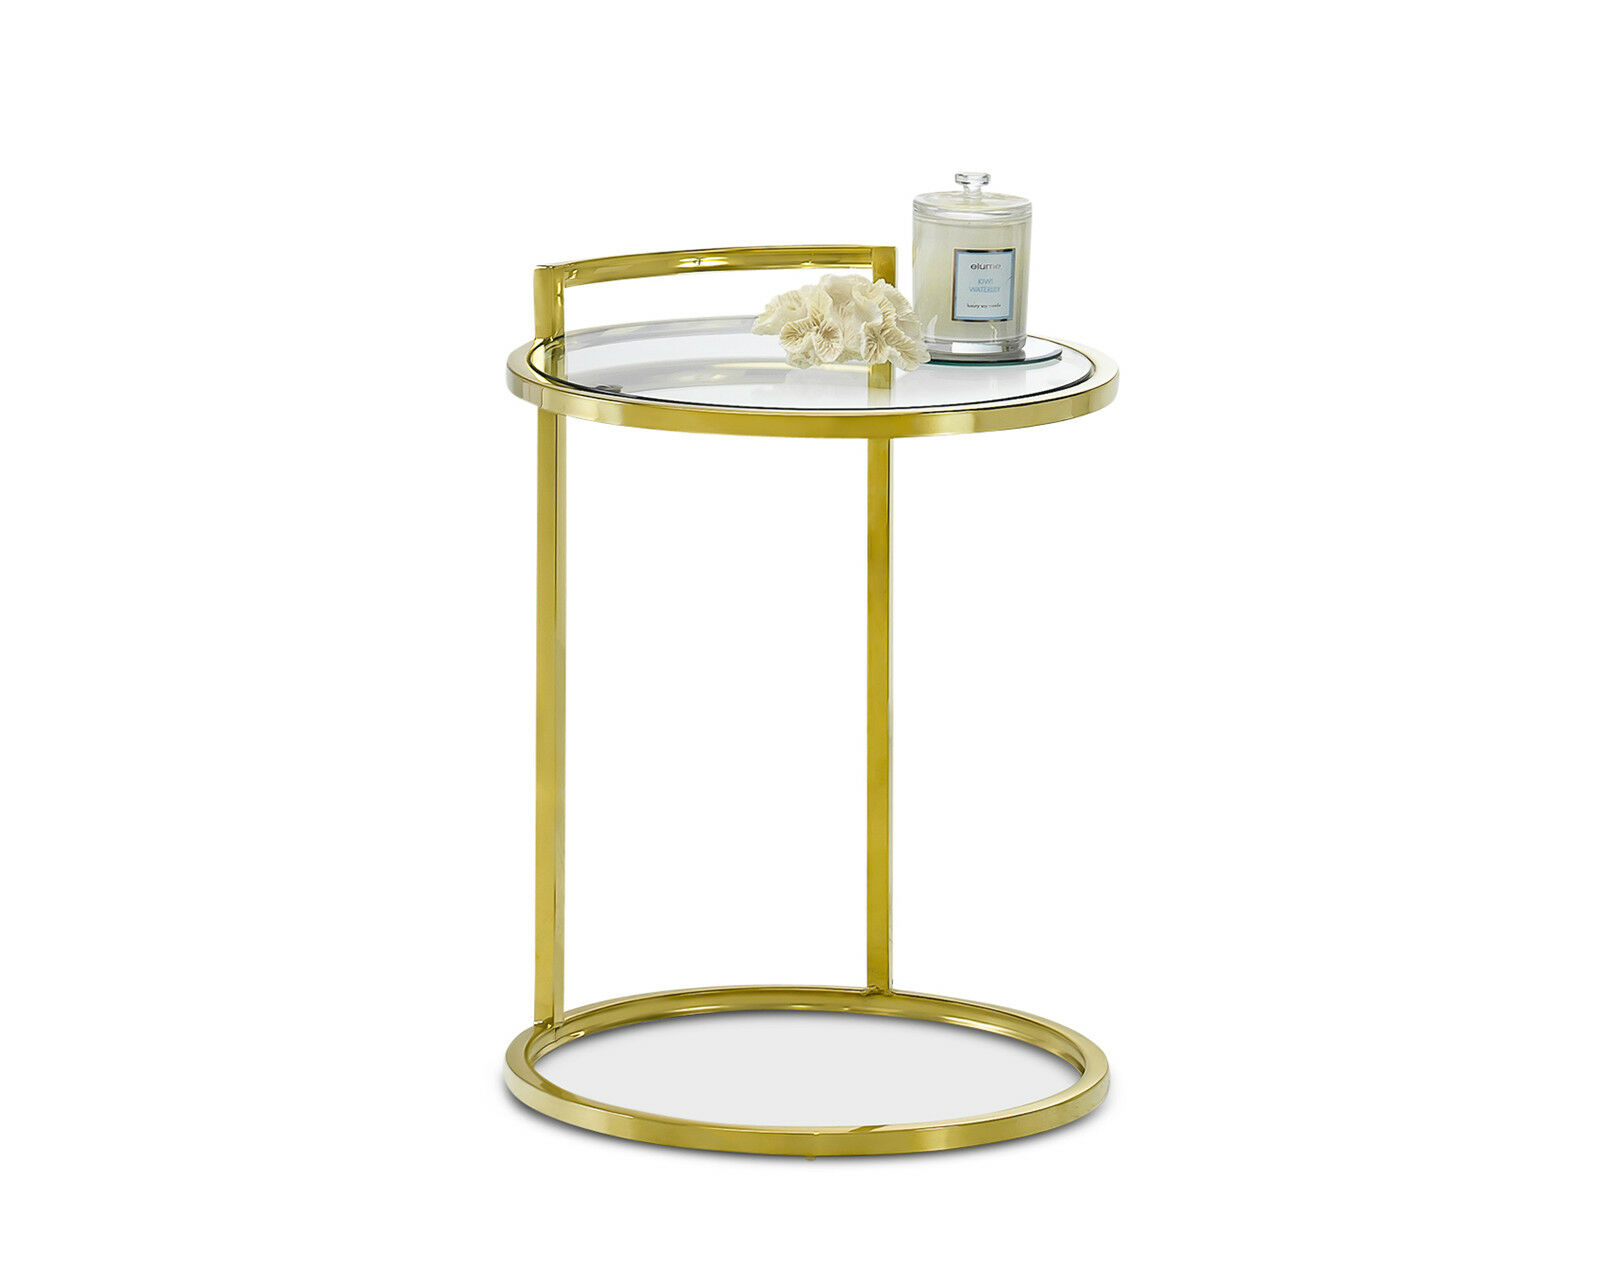 deco luxe side accent table round tall gold tempered glass top hollywood regency sage green paint pier imports lamps tiffany pond lily lamp perspex nest tables set nesting retro